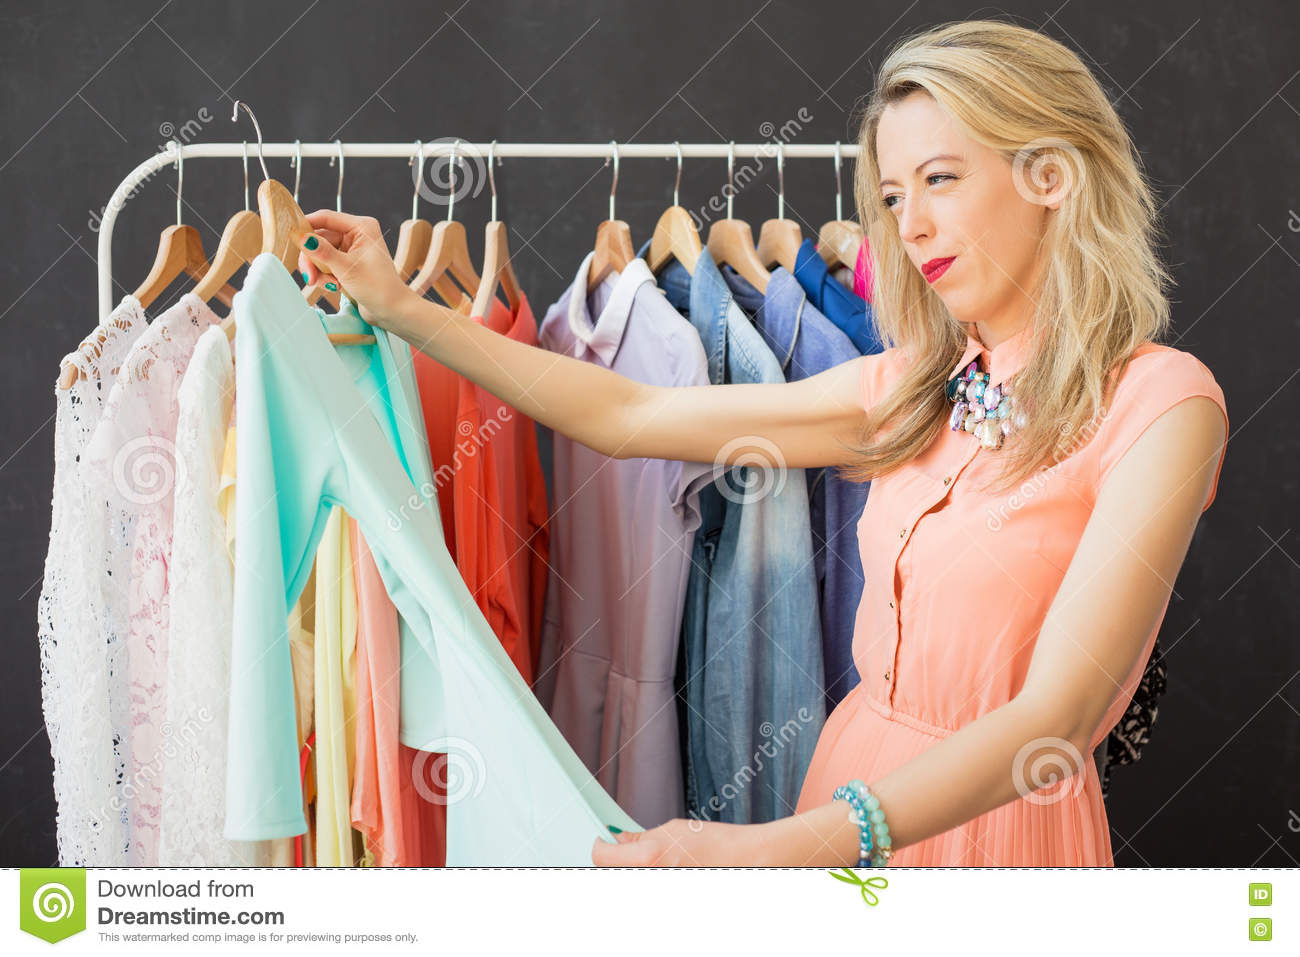 Woman looking at piece of clothing